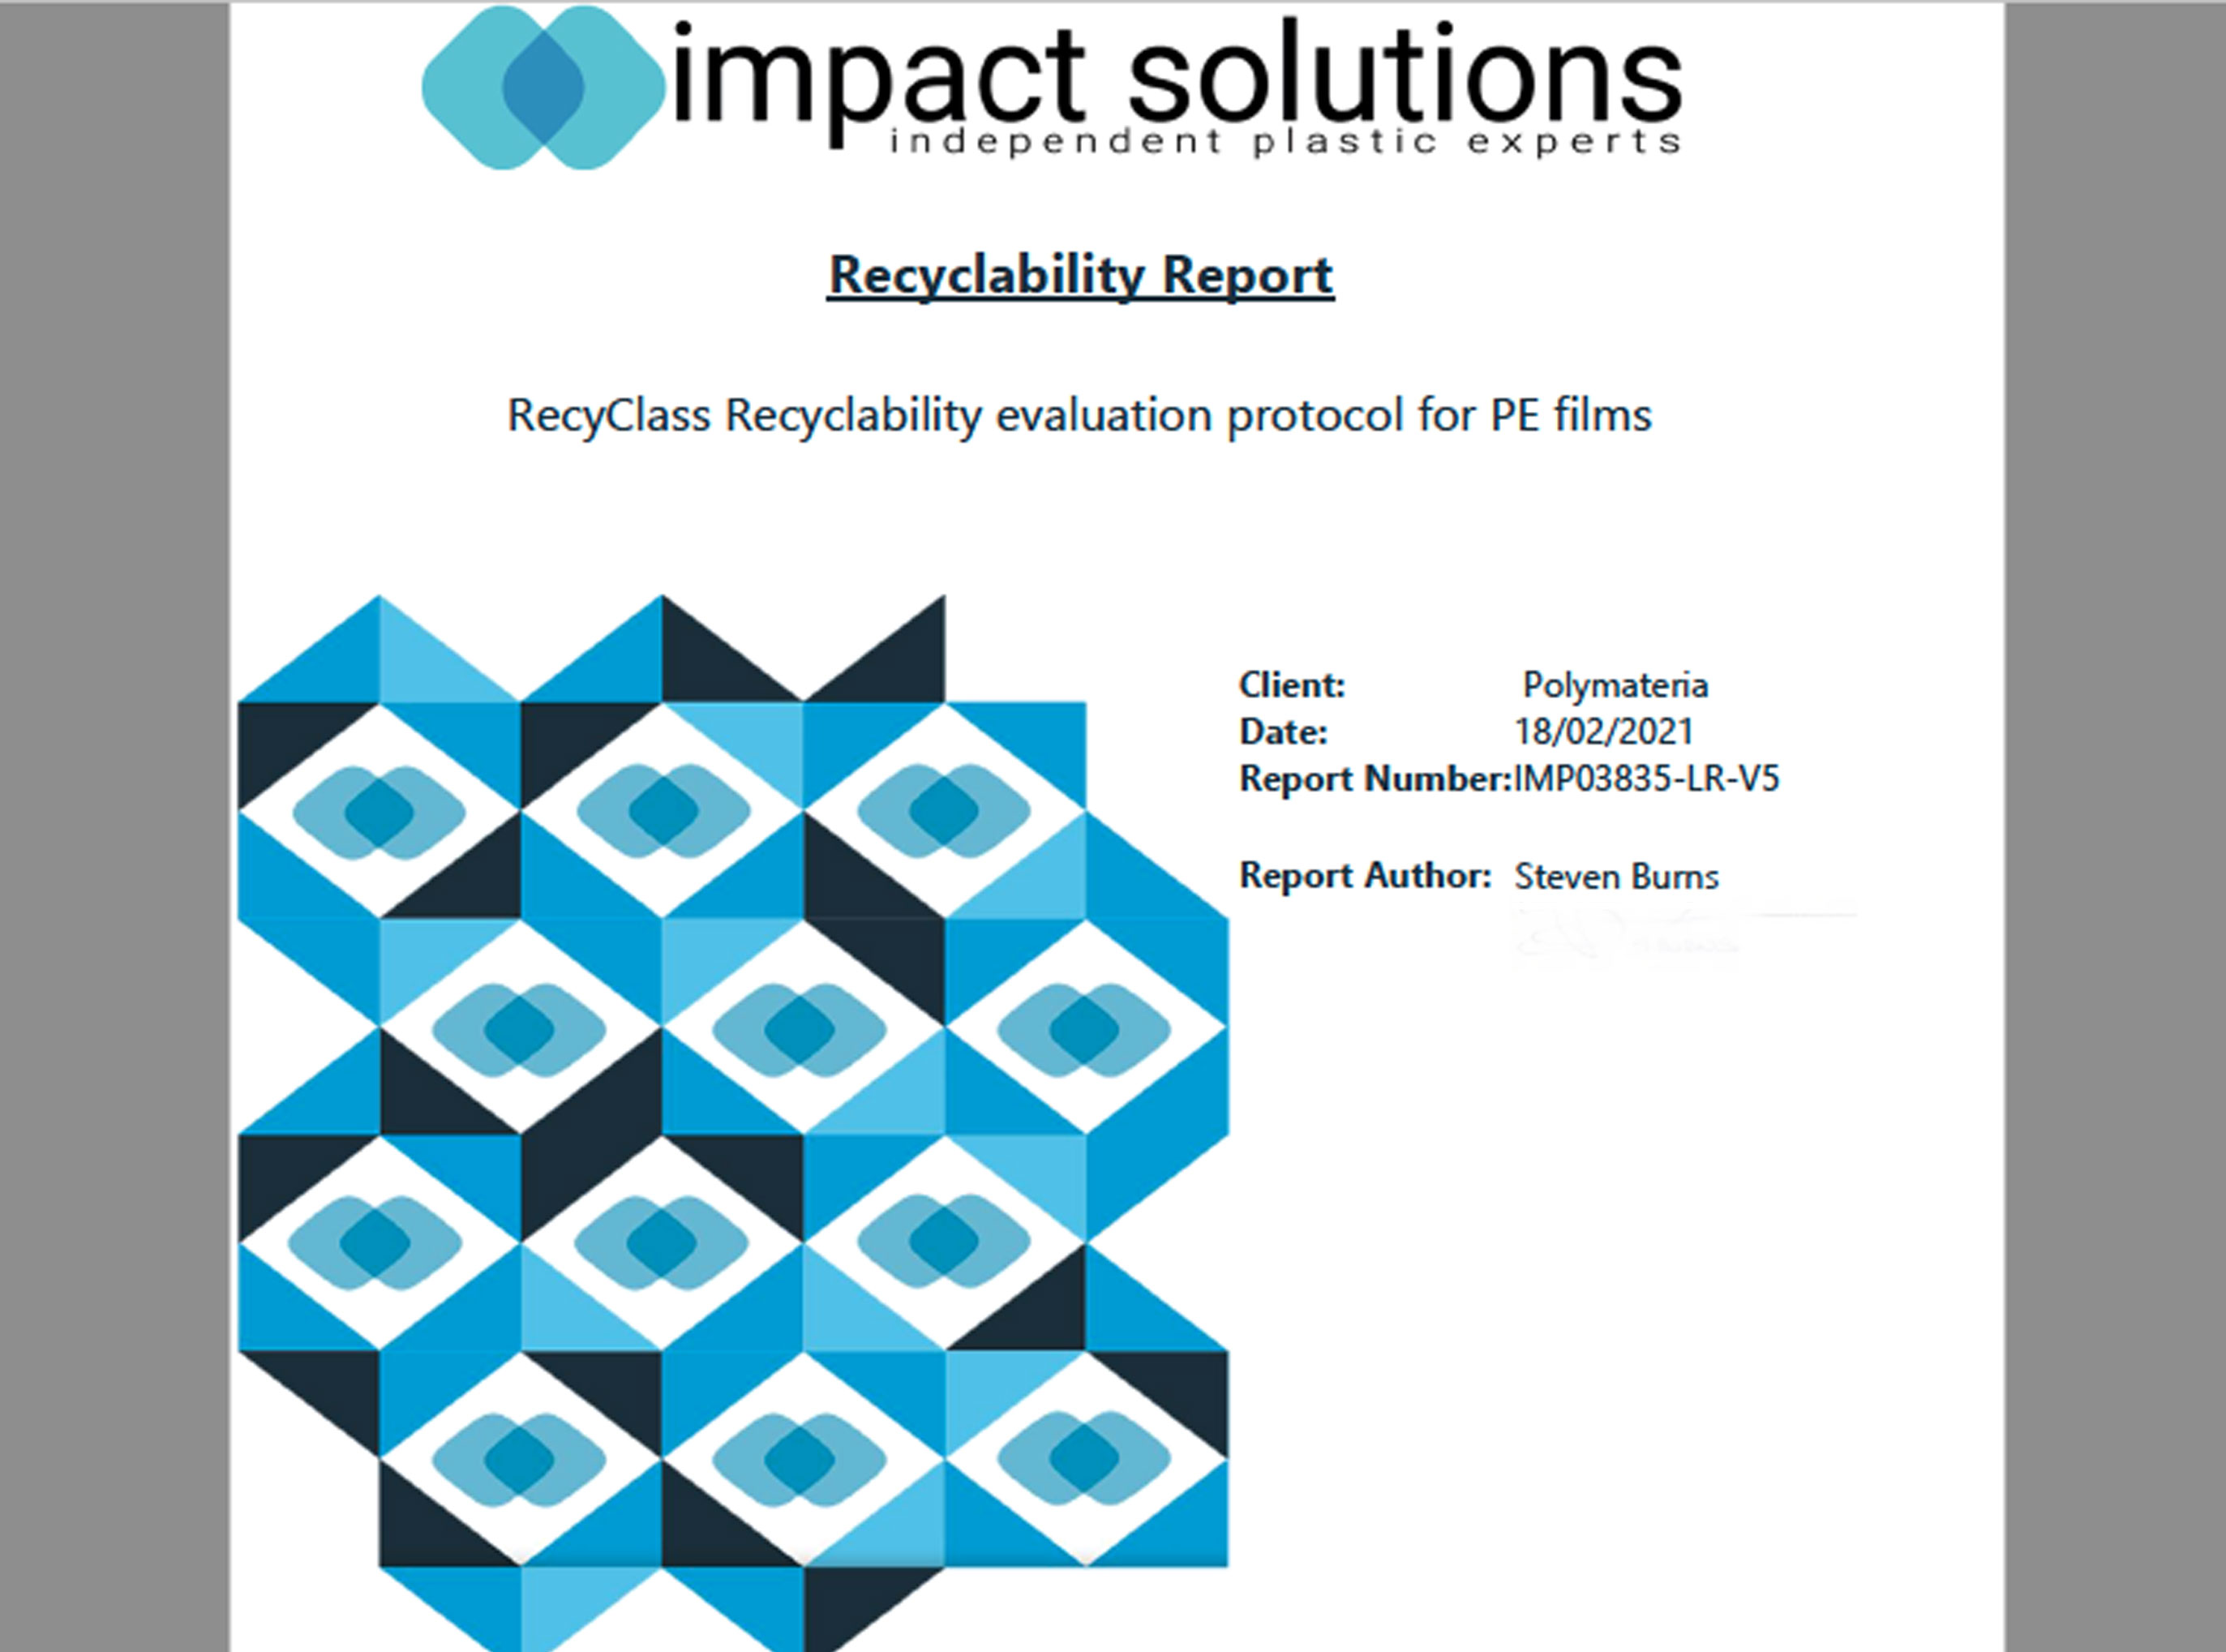 Testing Report on behalf of Polymateria: Recyclability Evaluation Protocol for PE Films